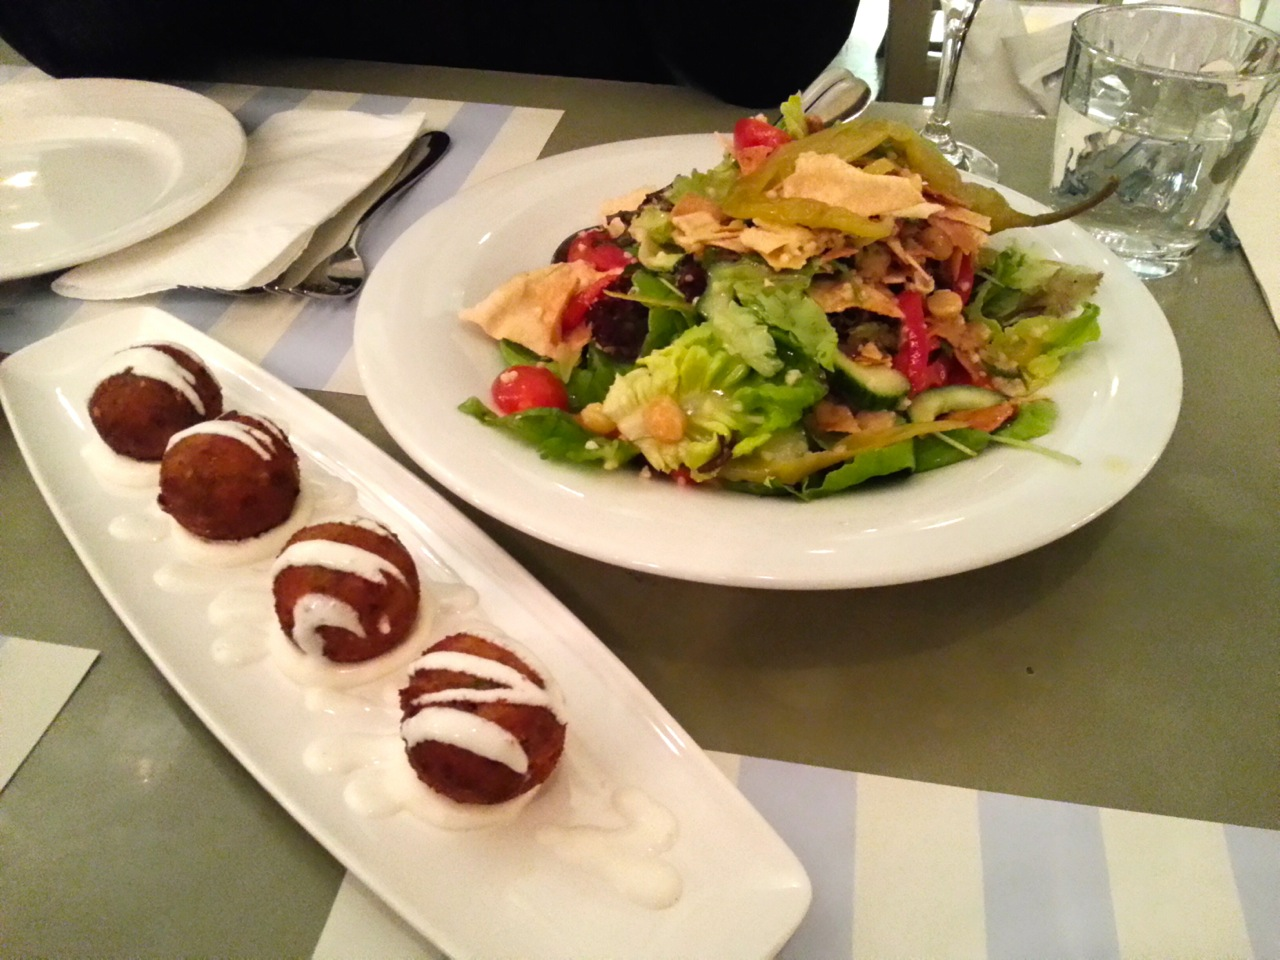 Things to do in Athens for Foodies: Kuzina Restaurant Zucchini Balls and Fatoush Salad